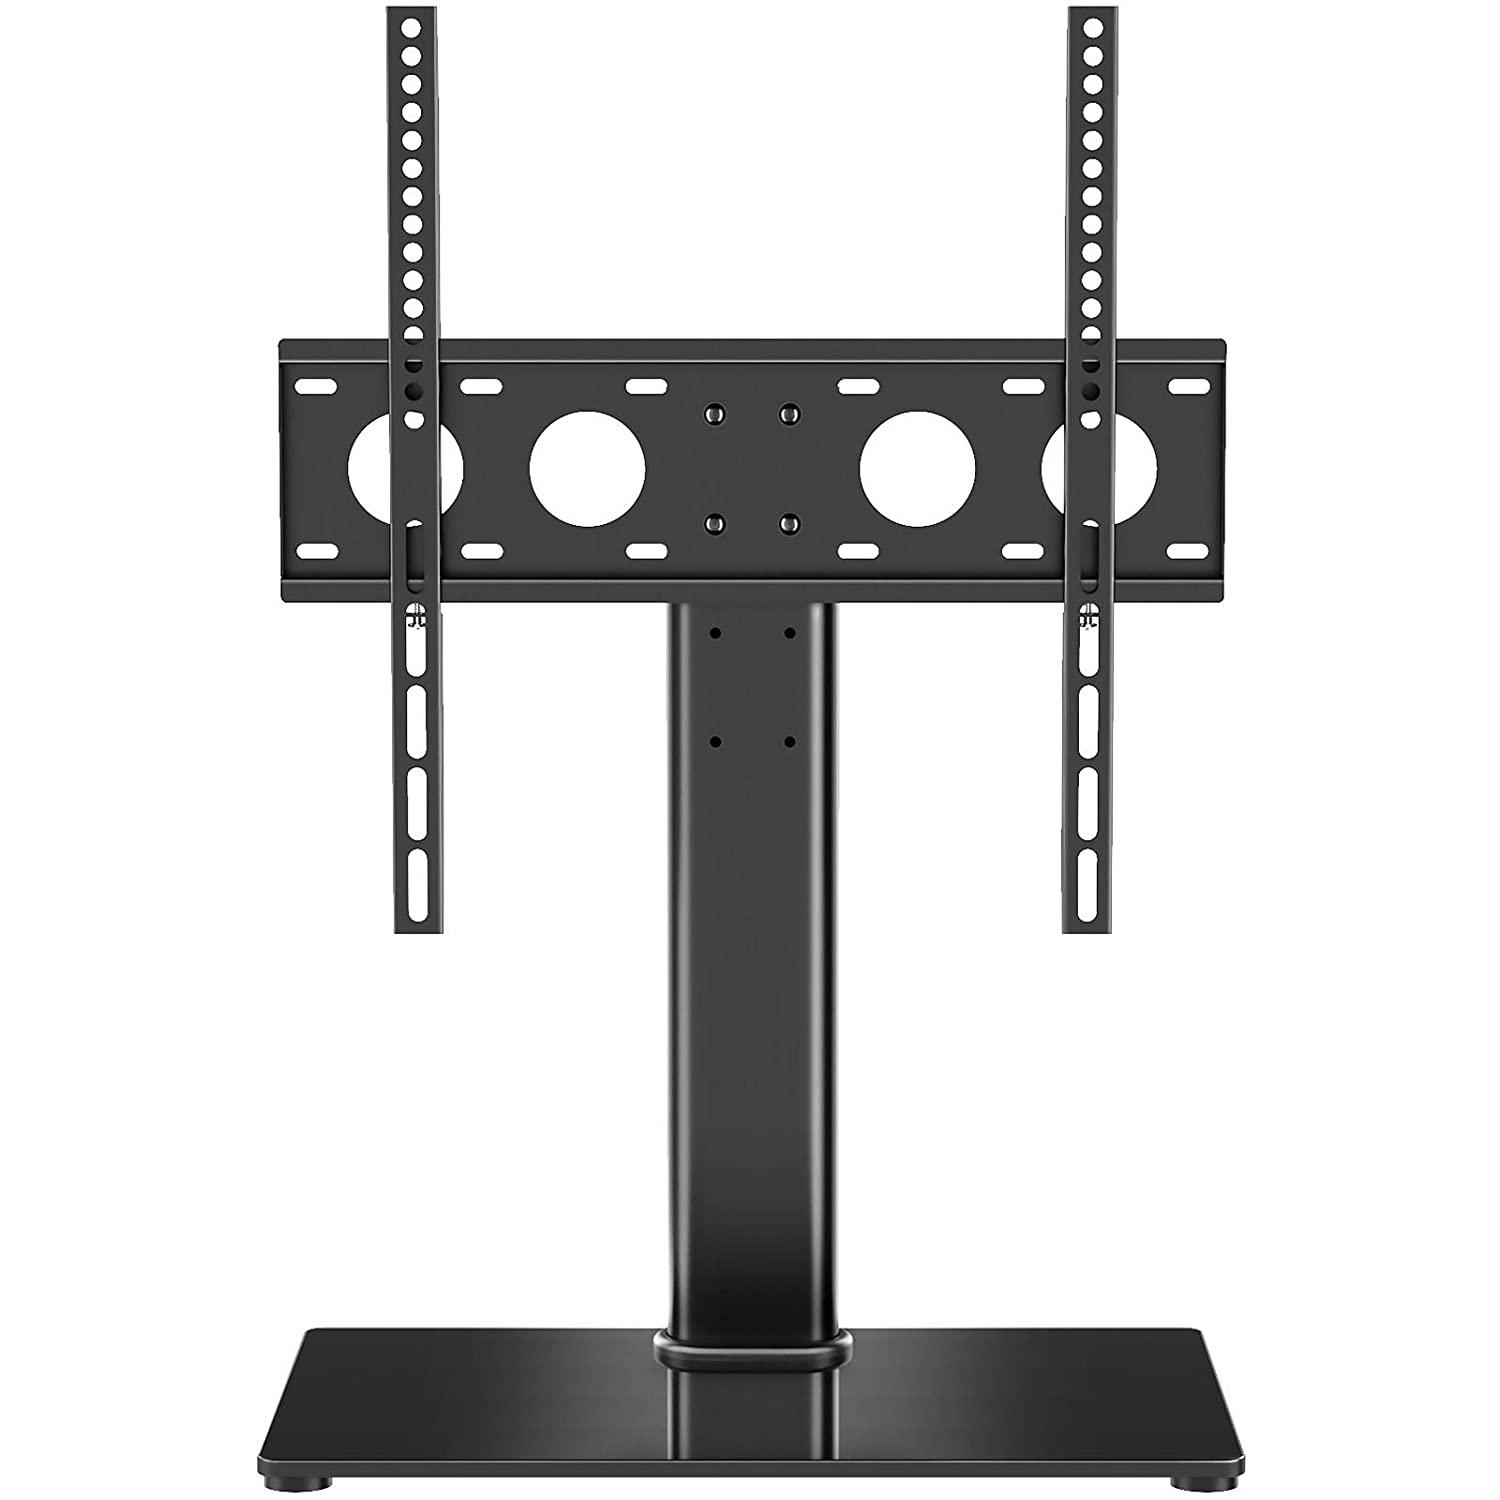 tabletop for monitor desk let screen stand pin tv table riser lcd universal pedestal